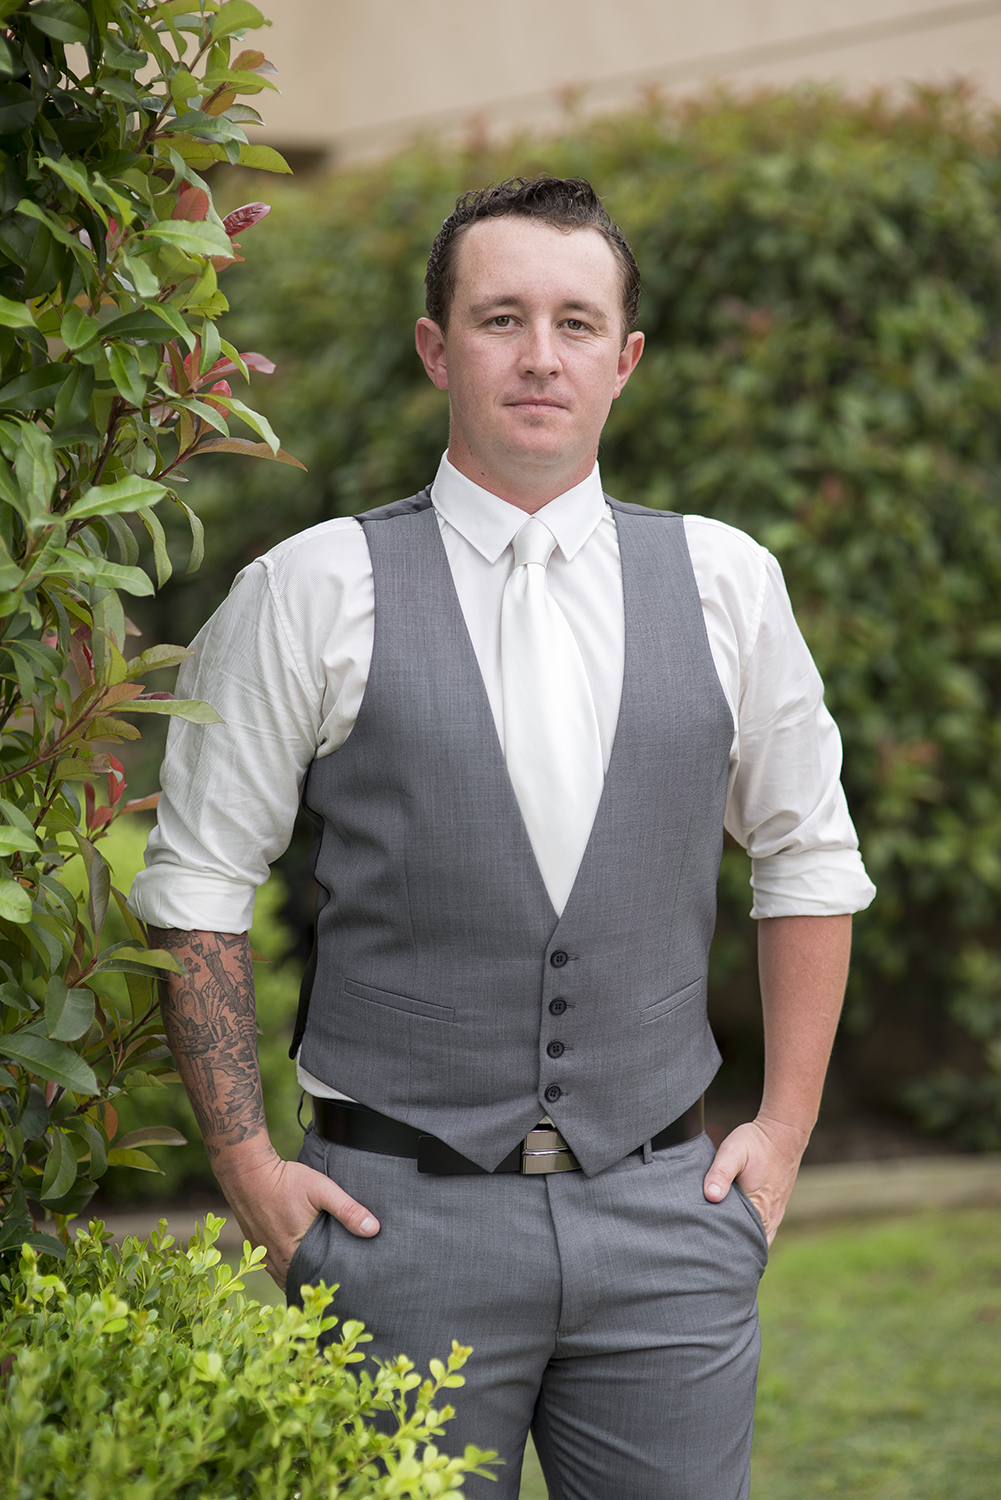 Our Wedding0027.jpg